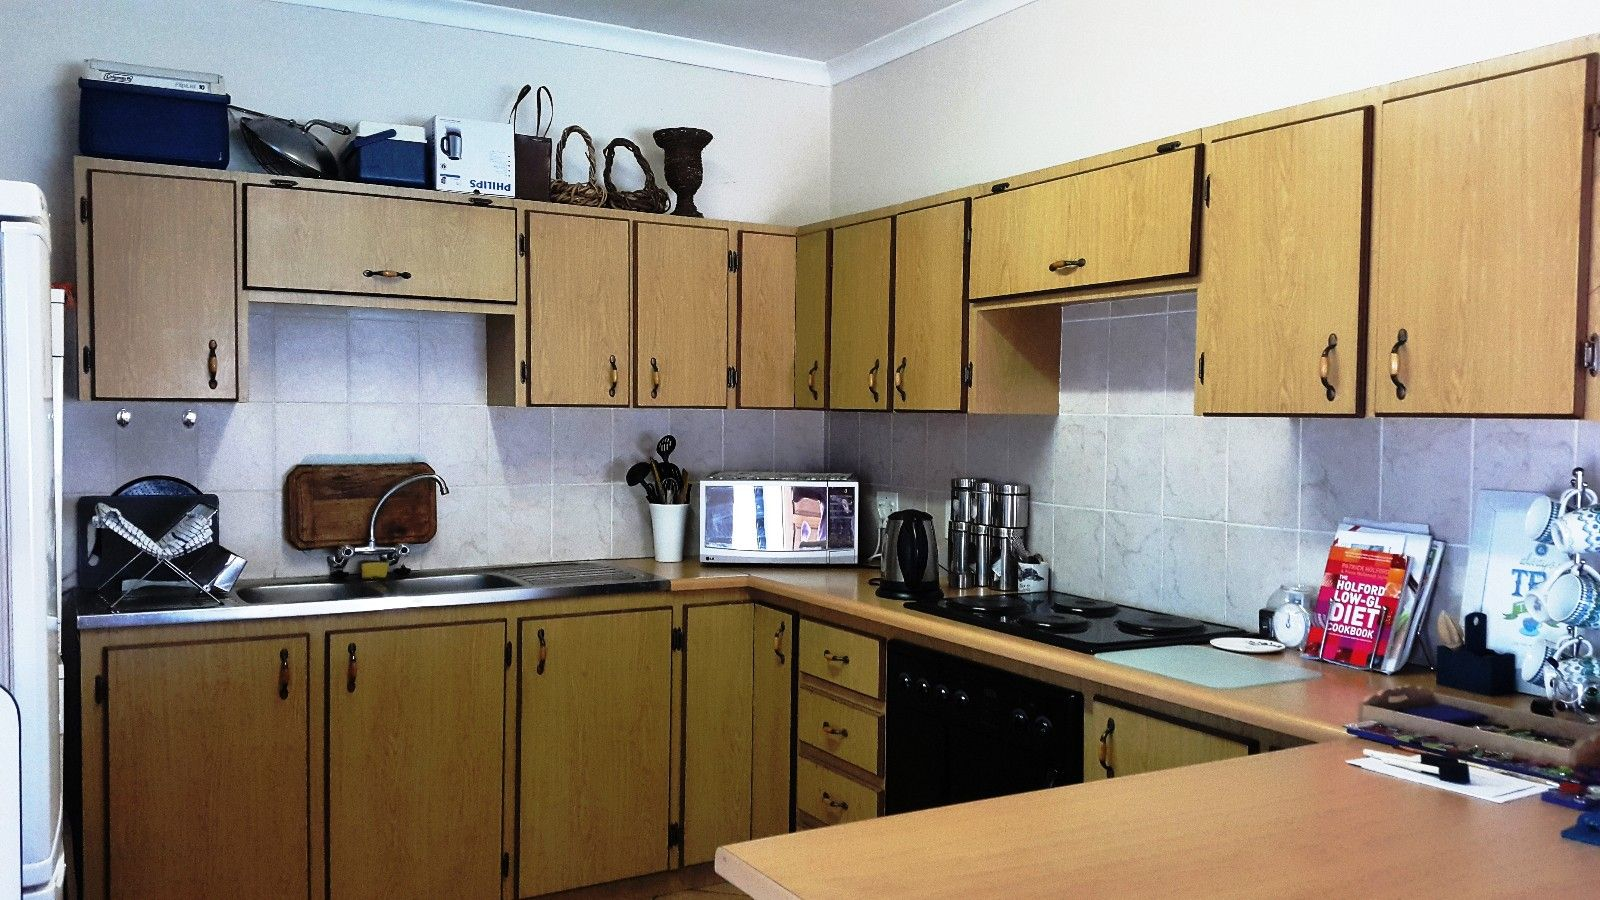 Potchefstroom Central for sale property. Ref No: 13460775. Picture no 20